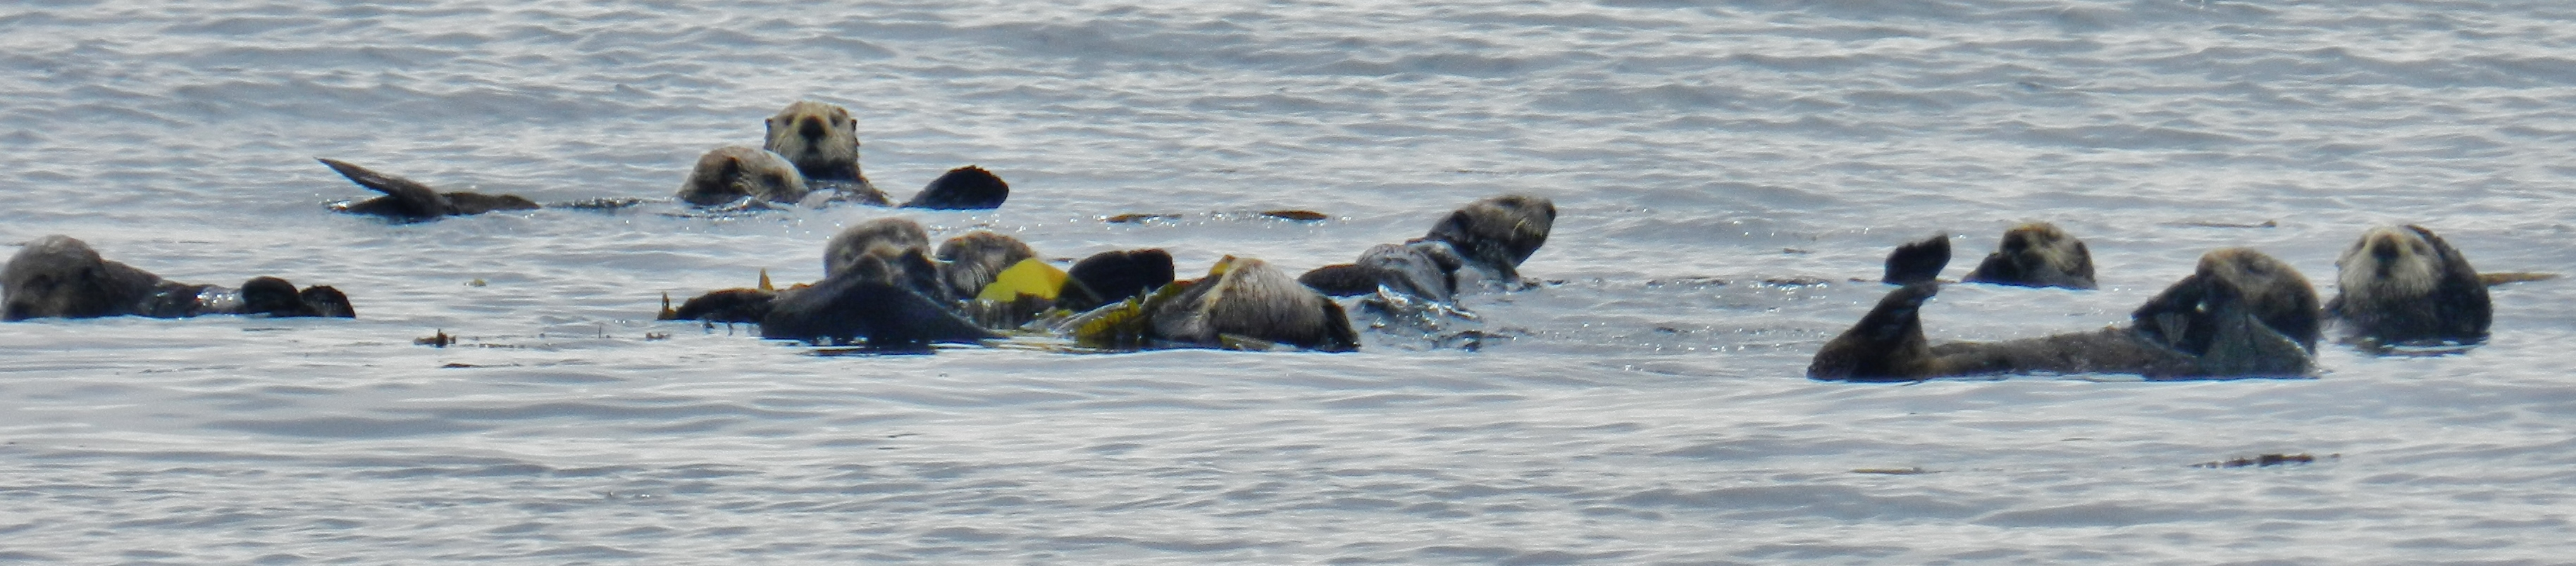 Even the sea otters take some time to relax and enjoy one another's company.